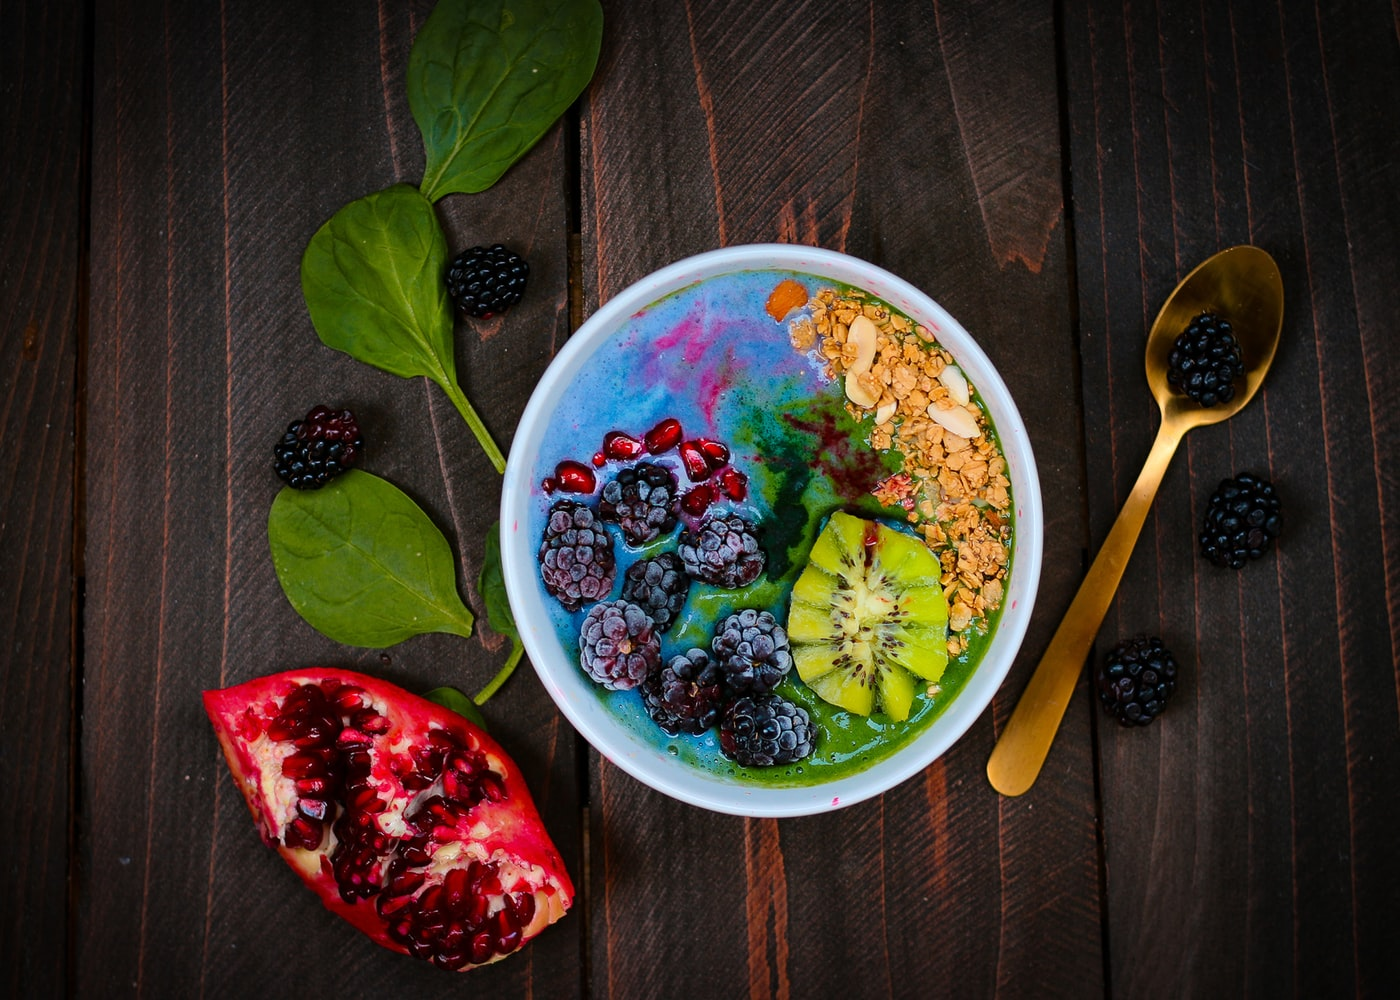 Bowl on wooden table filled with colorful mixed fruits